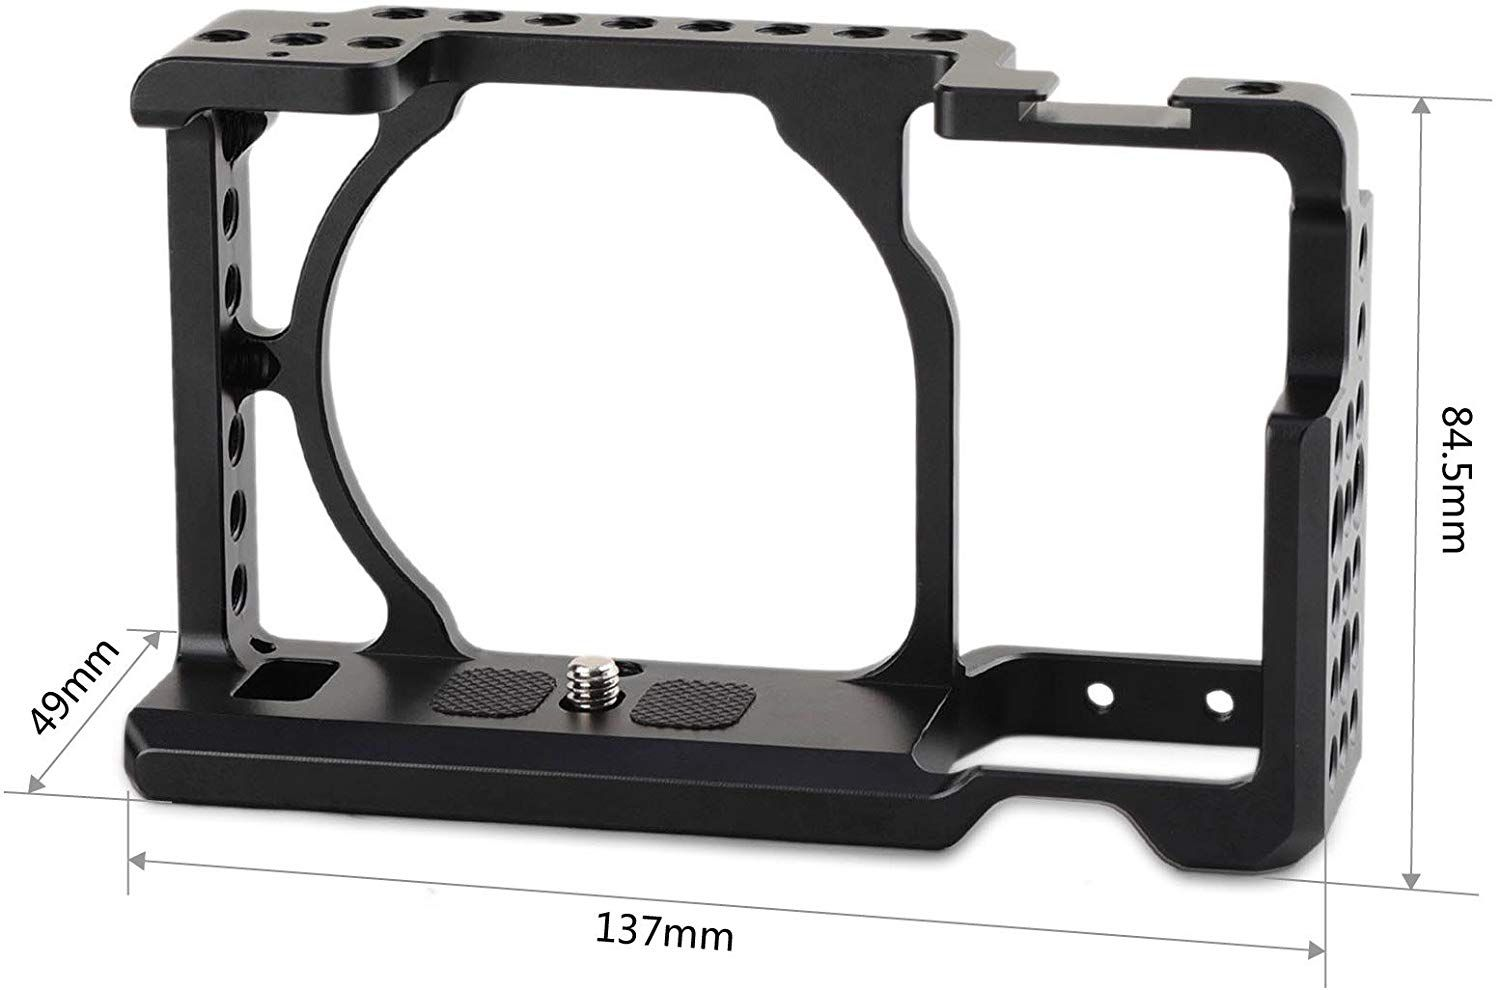 "SMALLRIG Camera Cage for Sony A6000 A6300 ILCE-6000 ILCE-6300 NEX7 with 1/4"" 3/8"" Mounting Points and Built-in Cold Shoe - 1661"